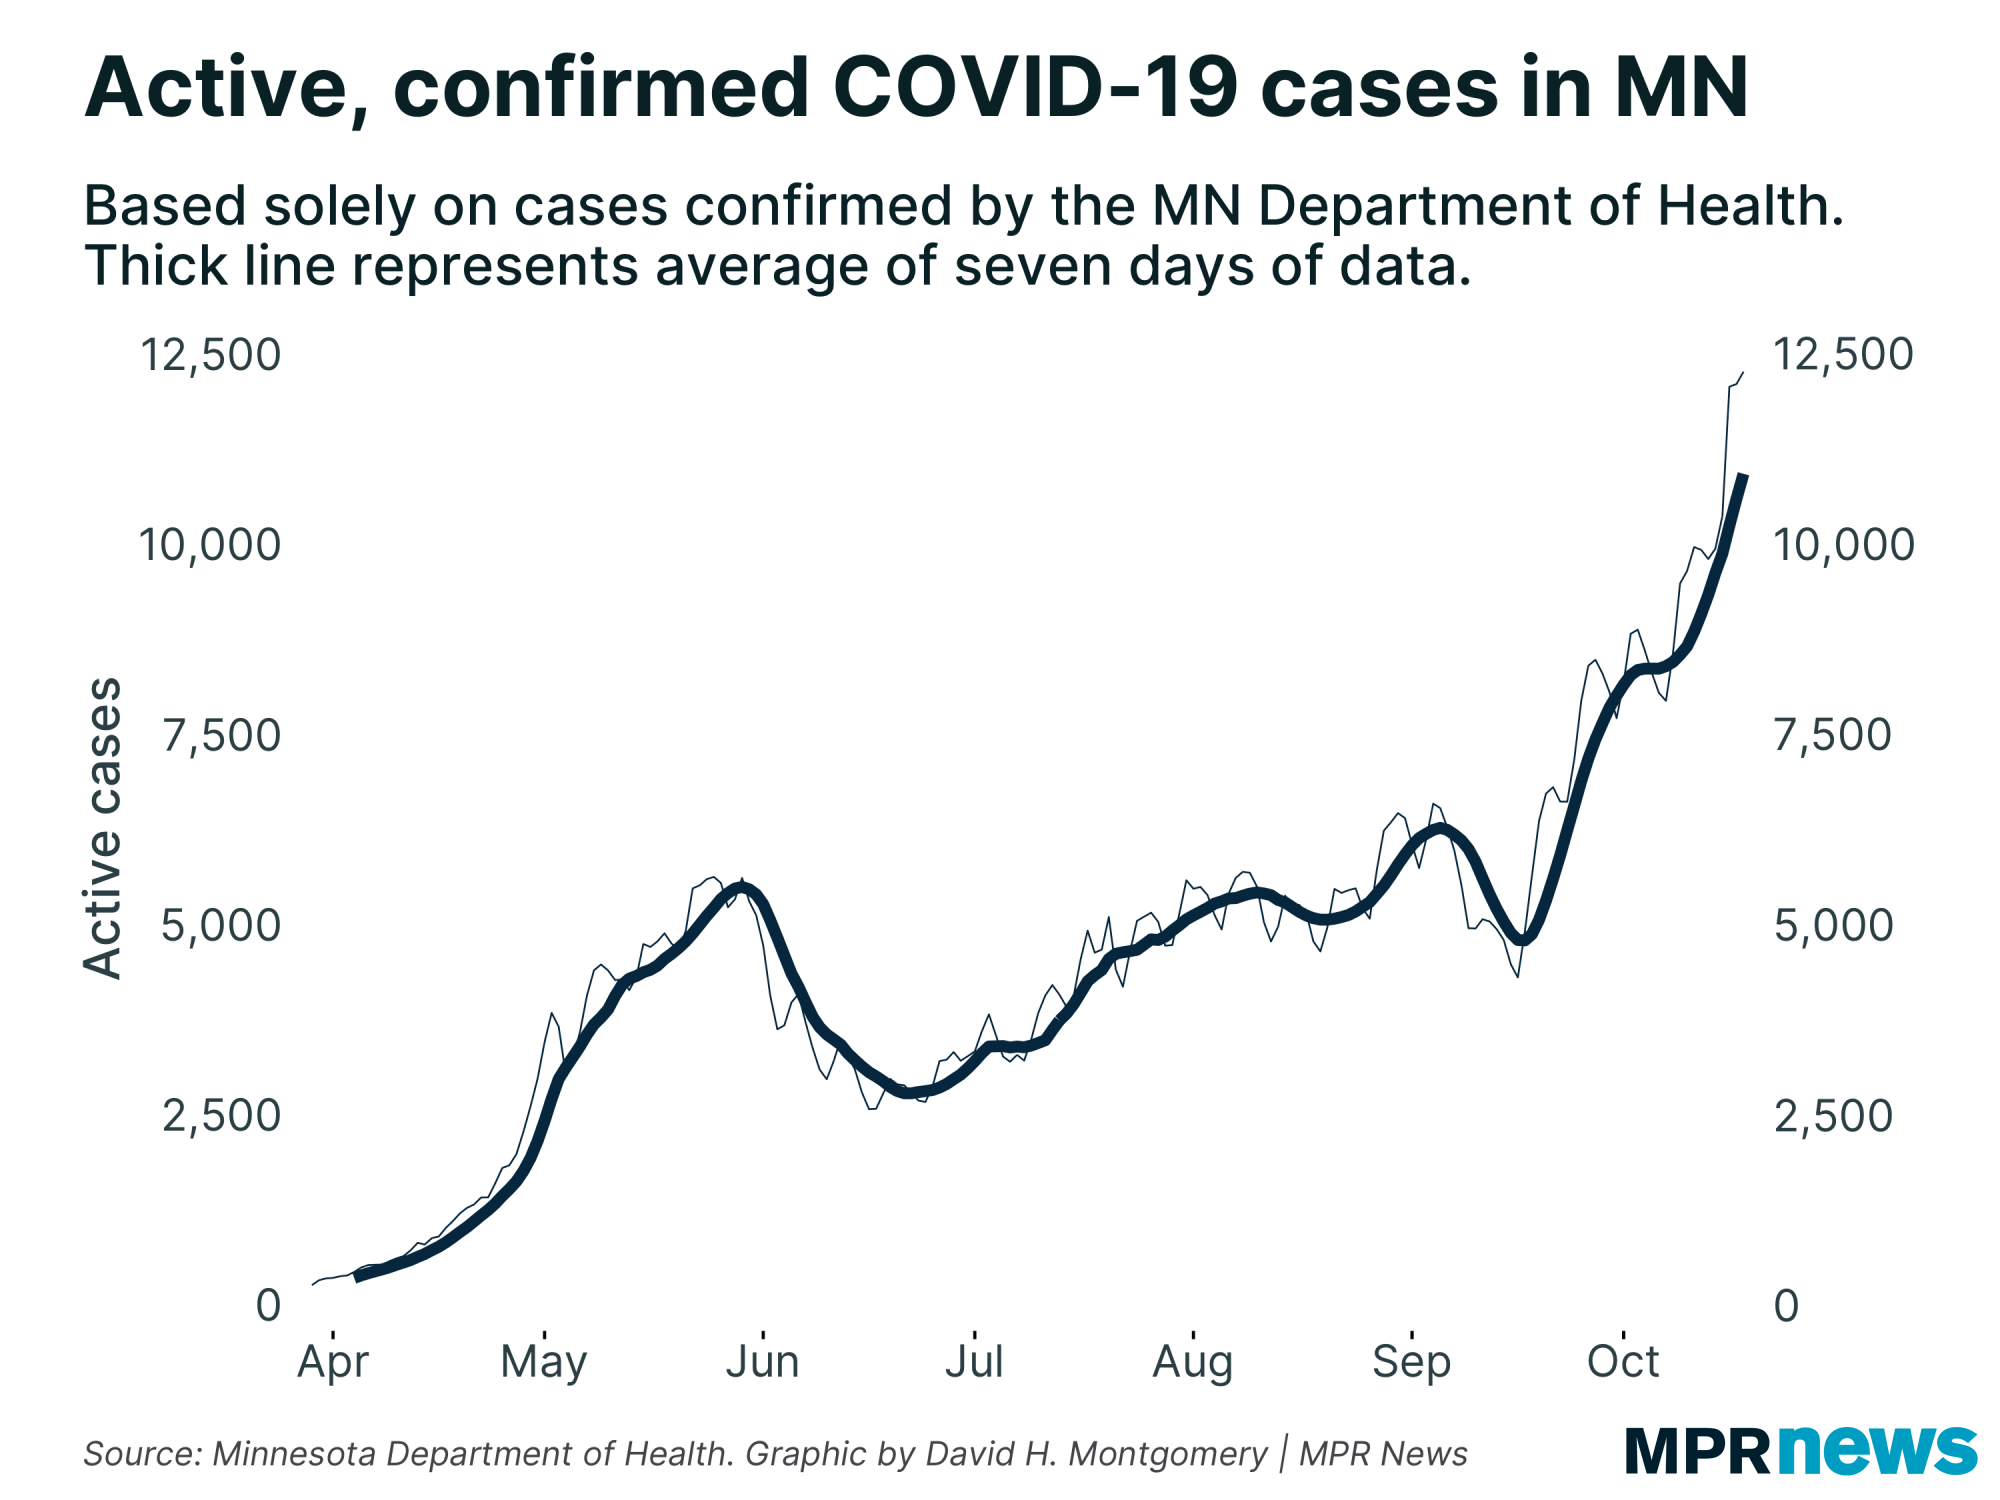 Oct. 18 update on COVID-19 in MN: 11th straight day with 1,000+ cases